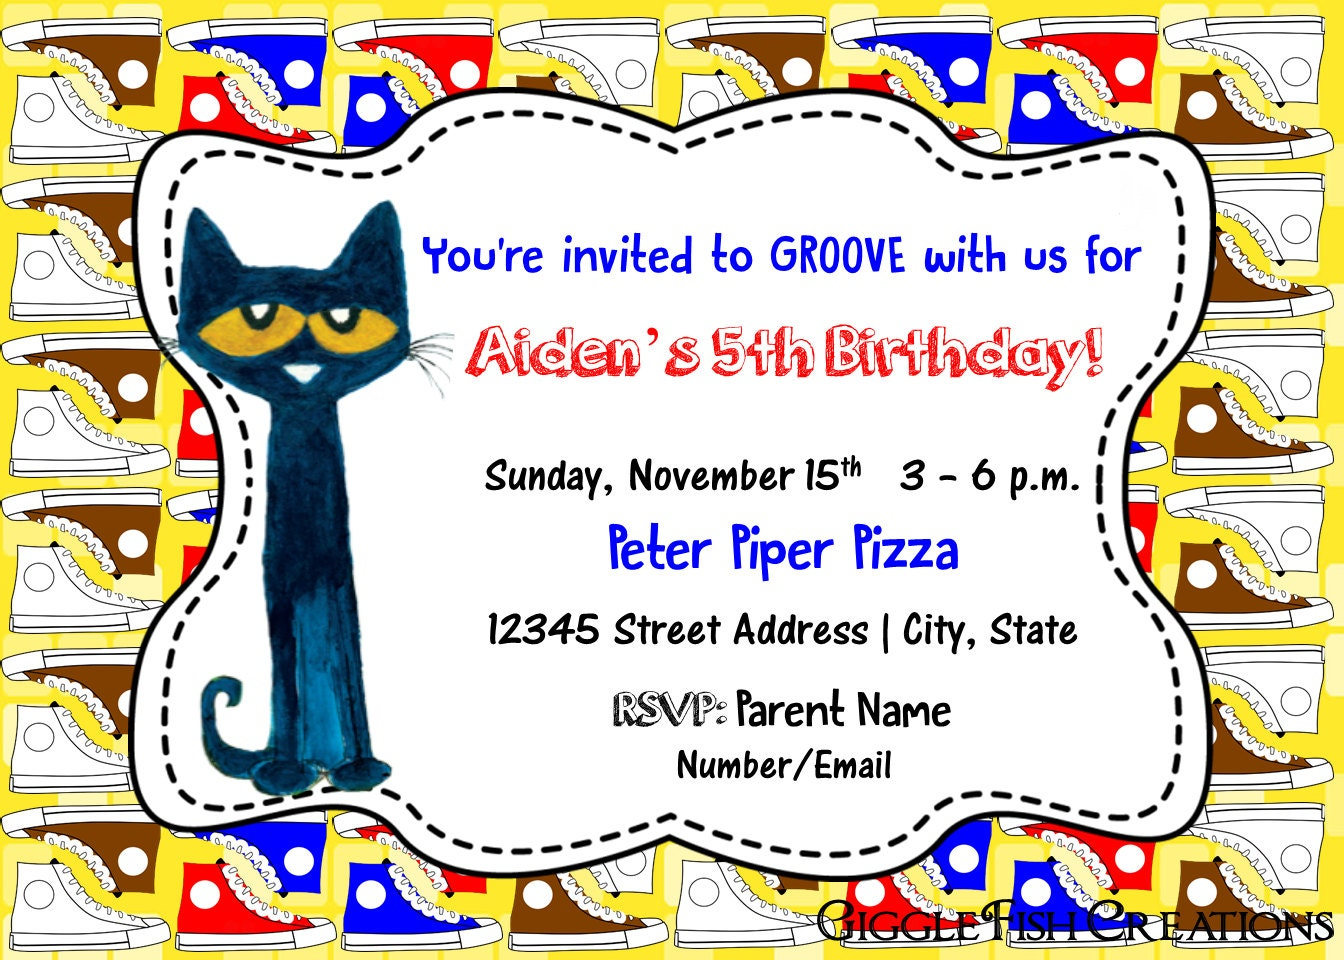 Pete the Cat Birthday Party Invitation White | Etsy